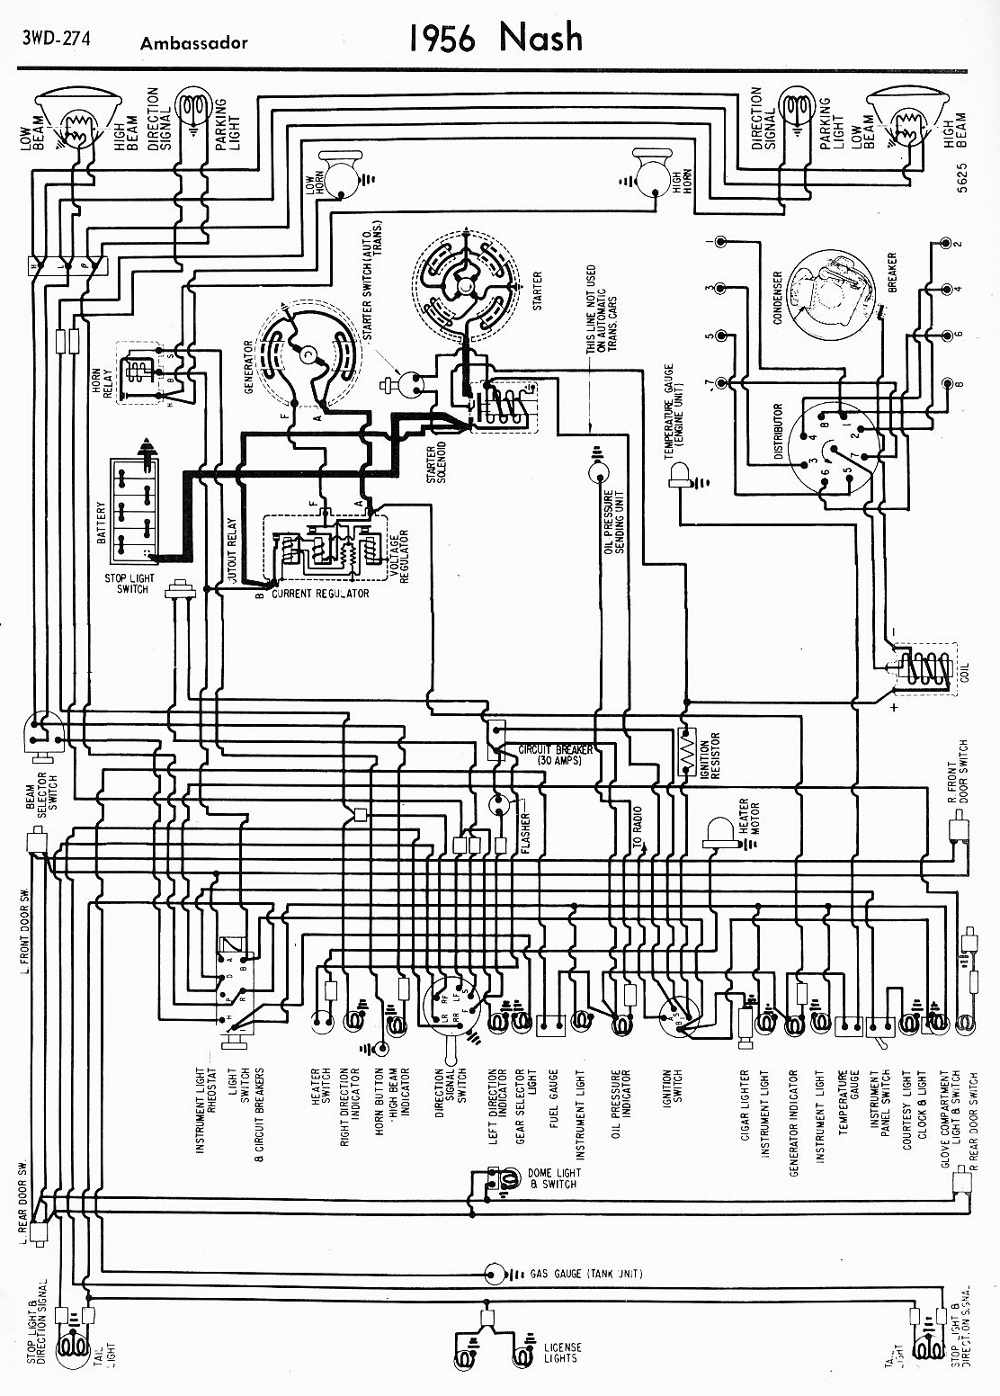 1966 charger wiring diagram electrical wiring diagrams rh cytrus co 1966 Mustang Wiring Schematic 1966 Chevy Truck Wiring Schematic